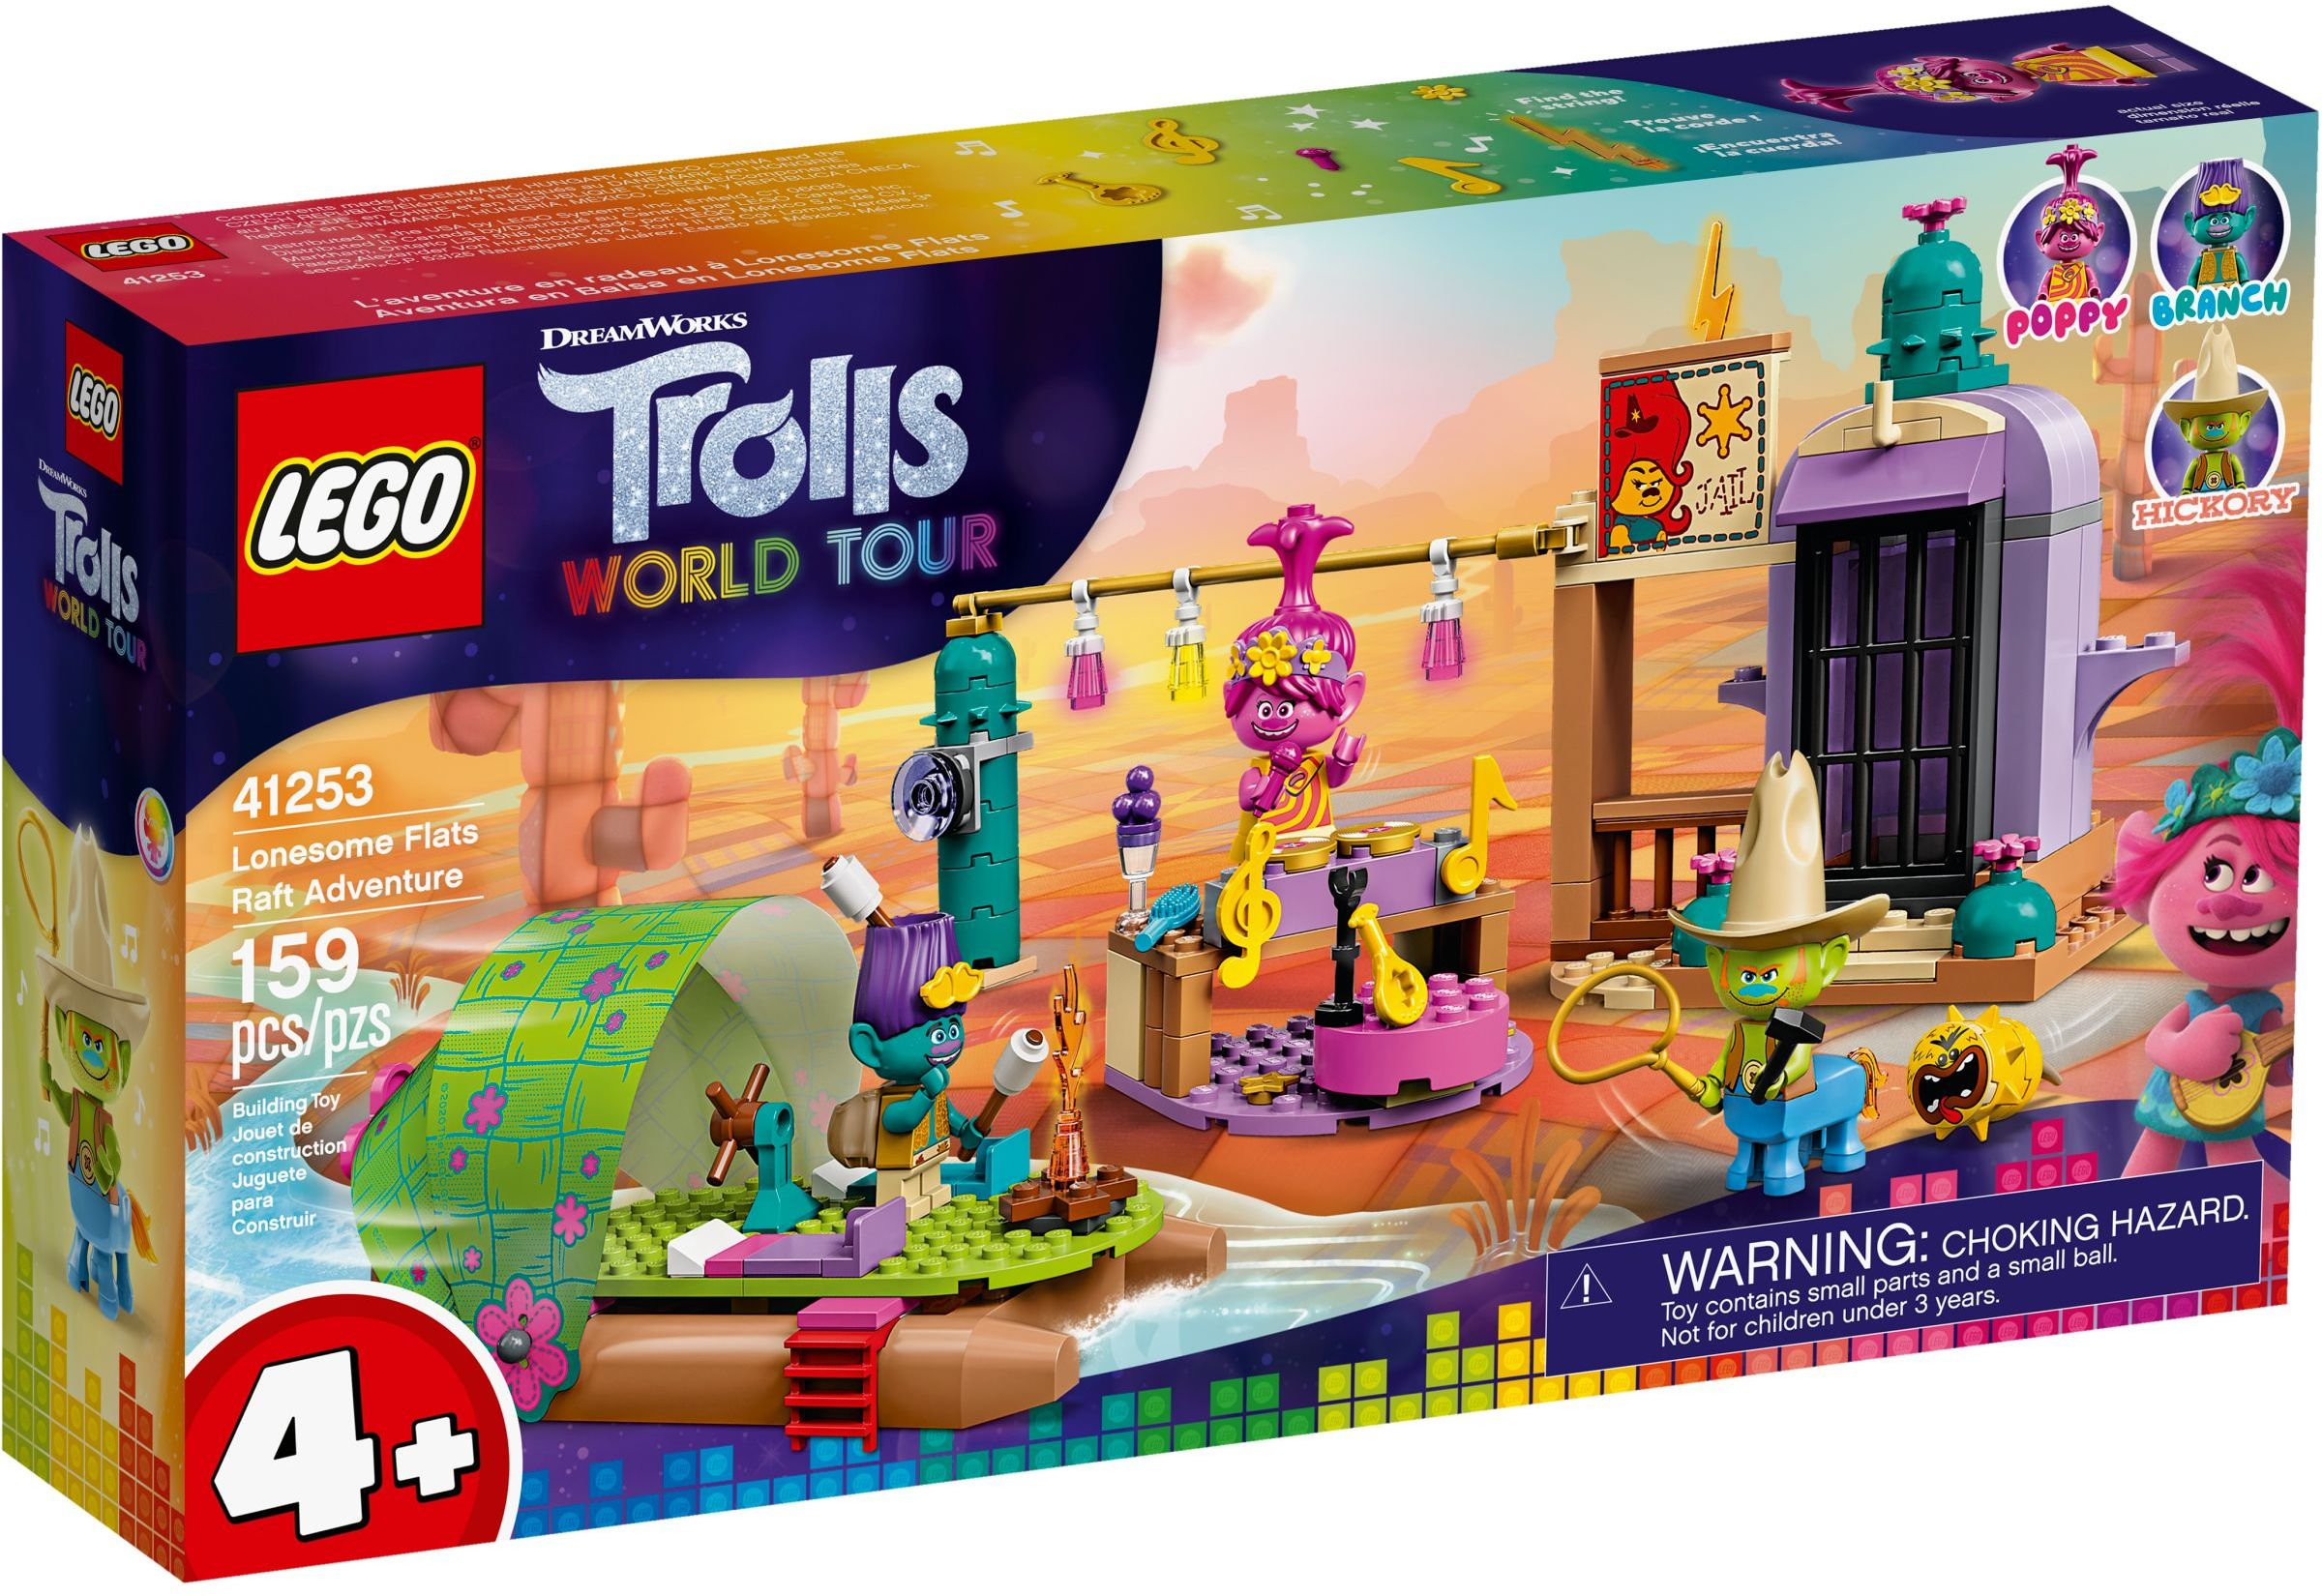 LEGO Trolls World Tour Sets: 41253 Lonesome Flats Raft Adventure NEW